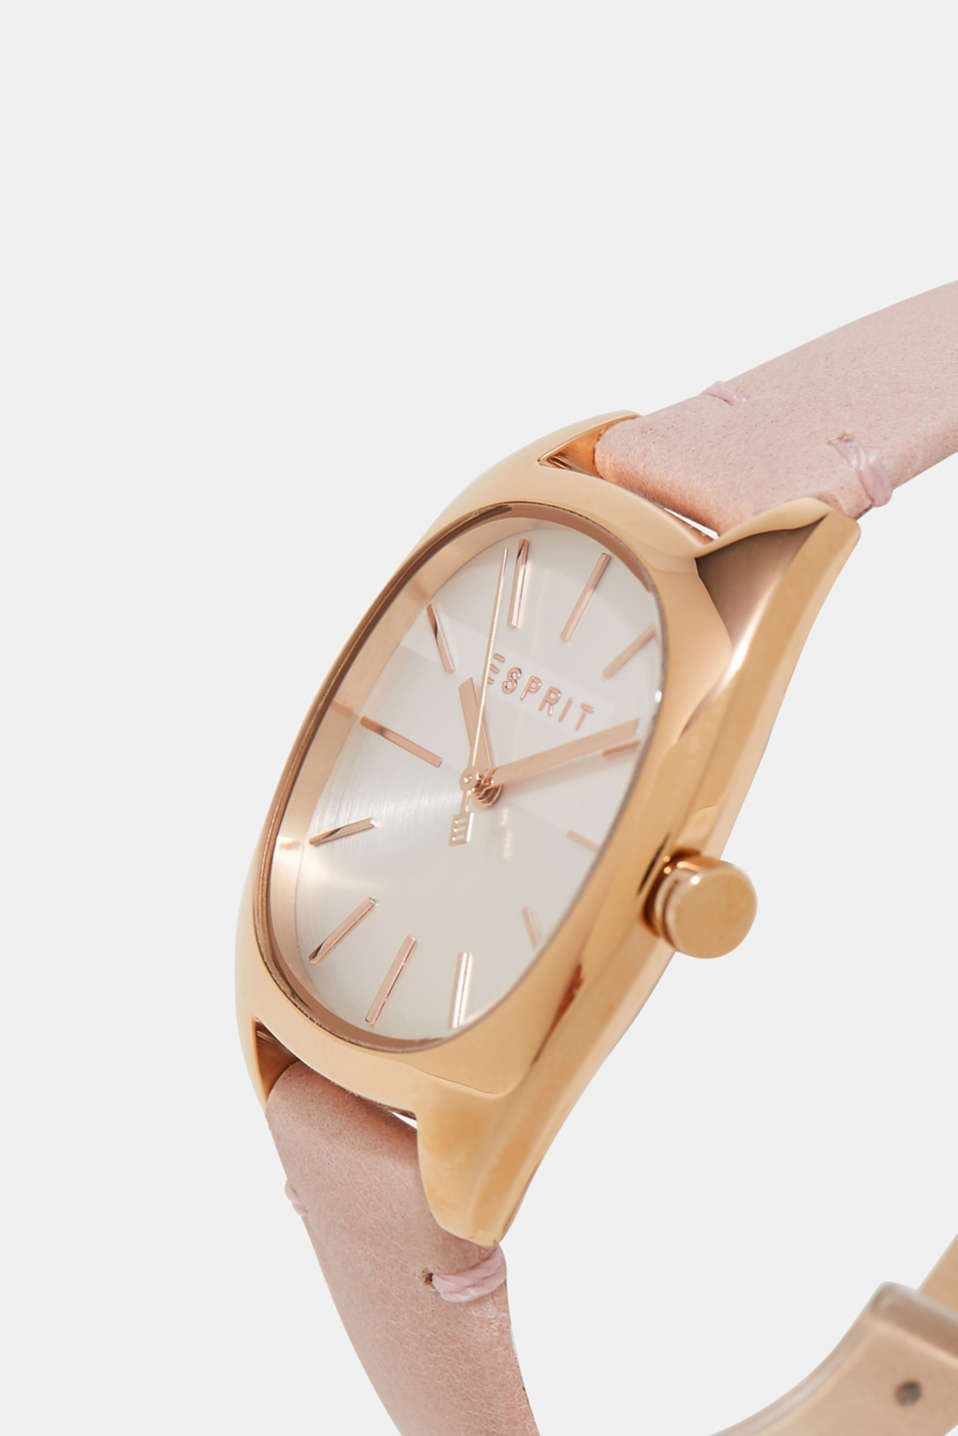 Rose gold watch with a leather strap